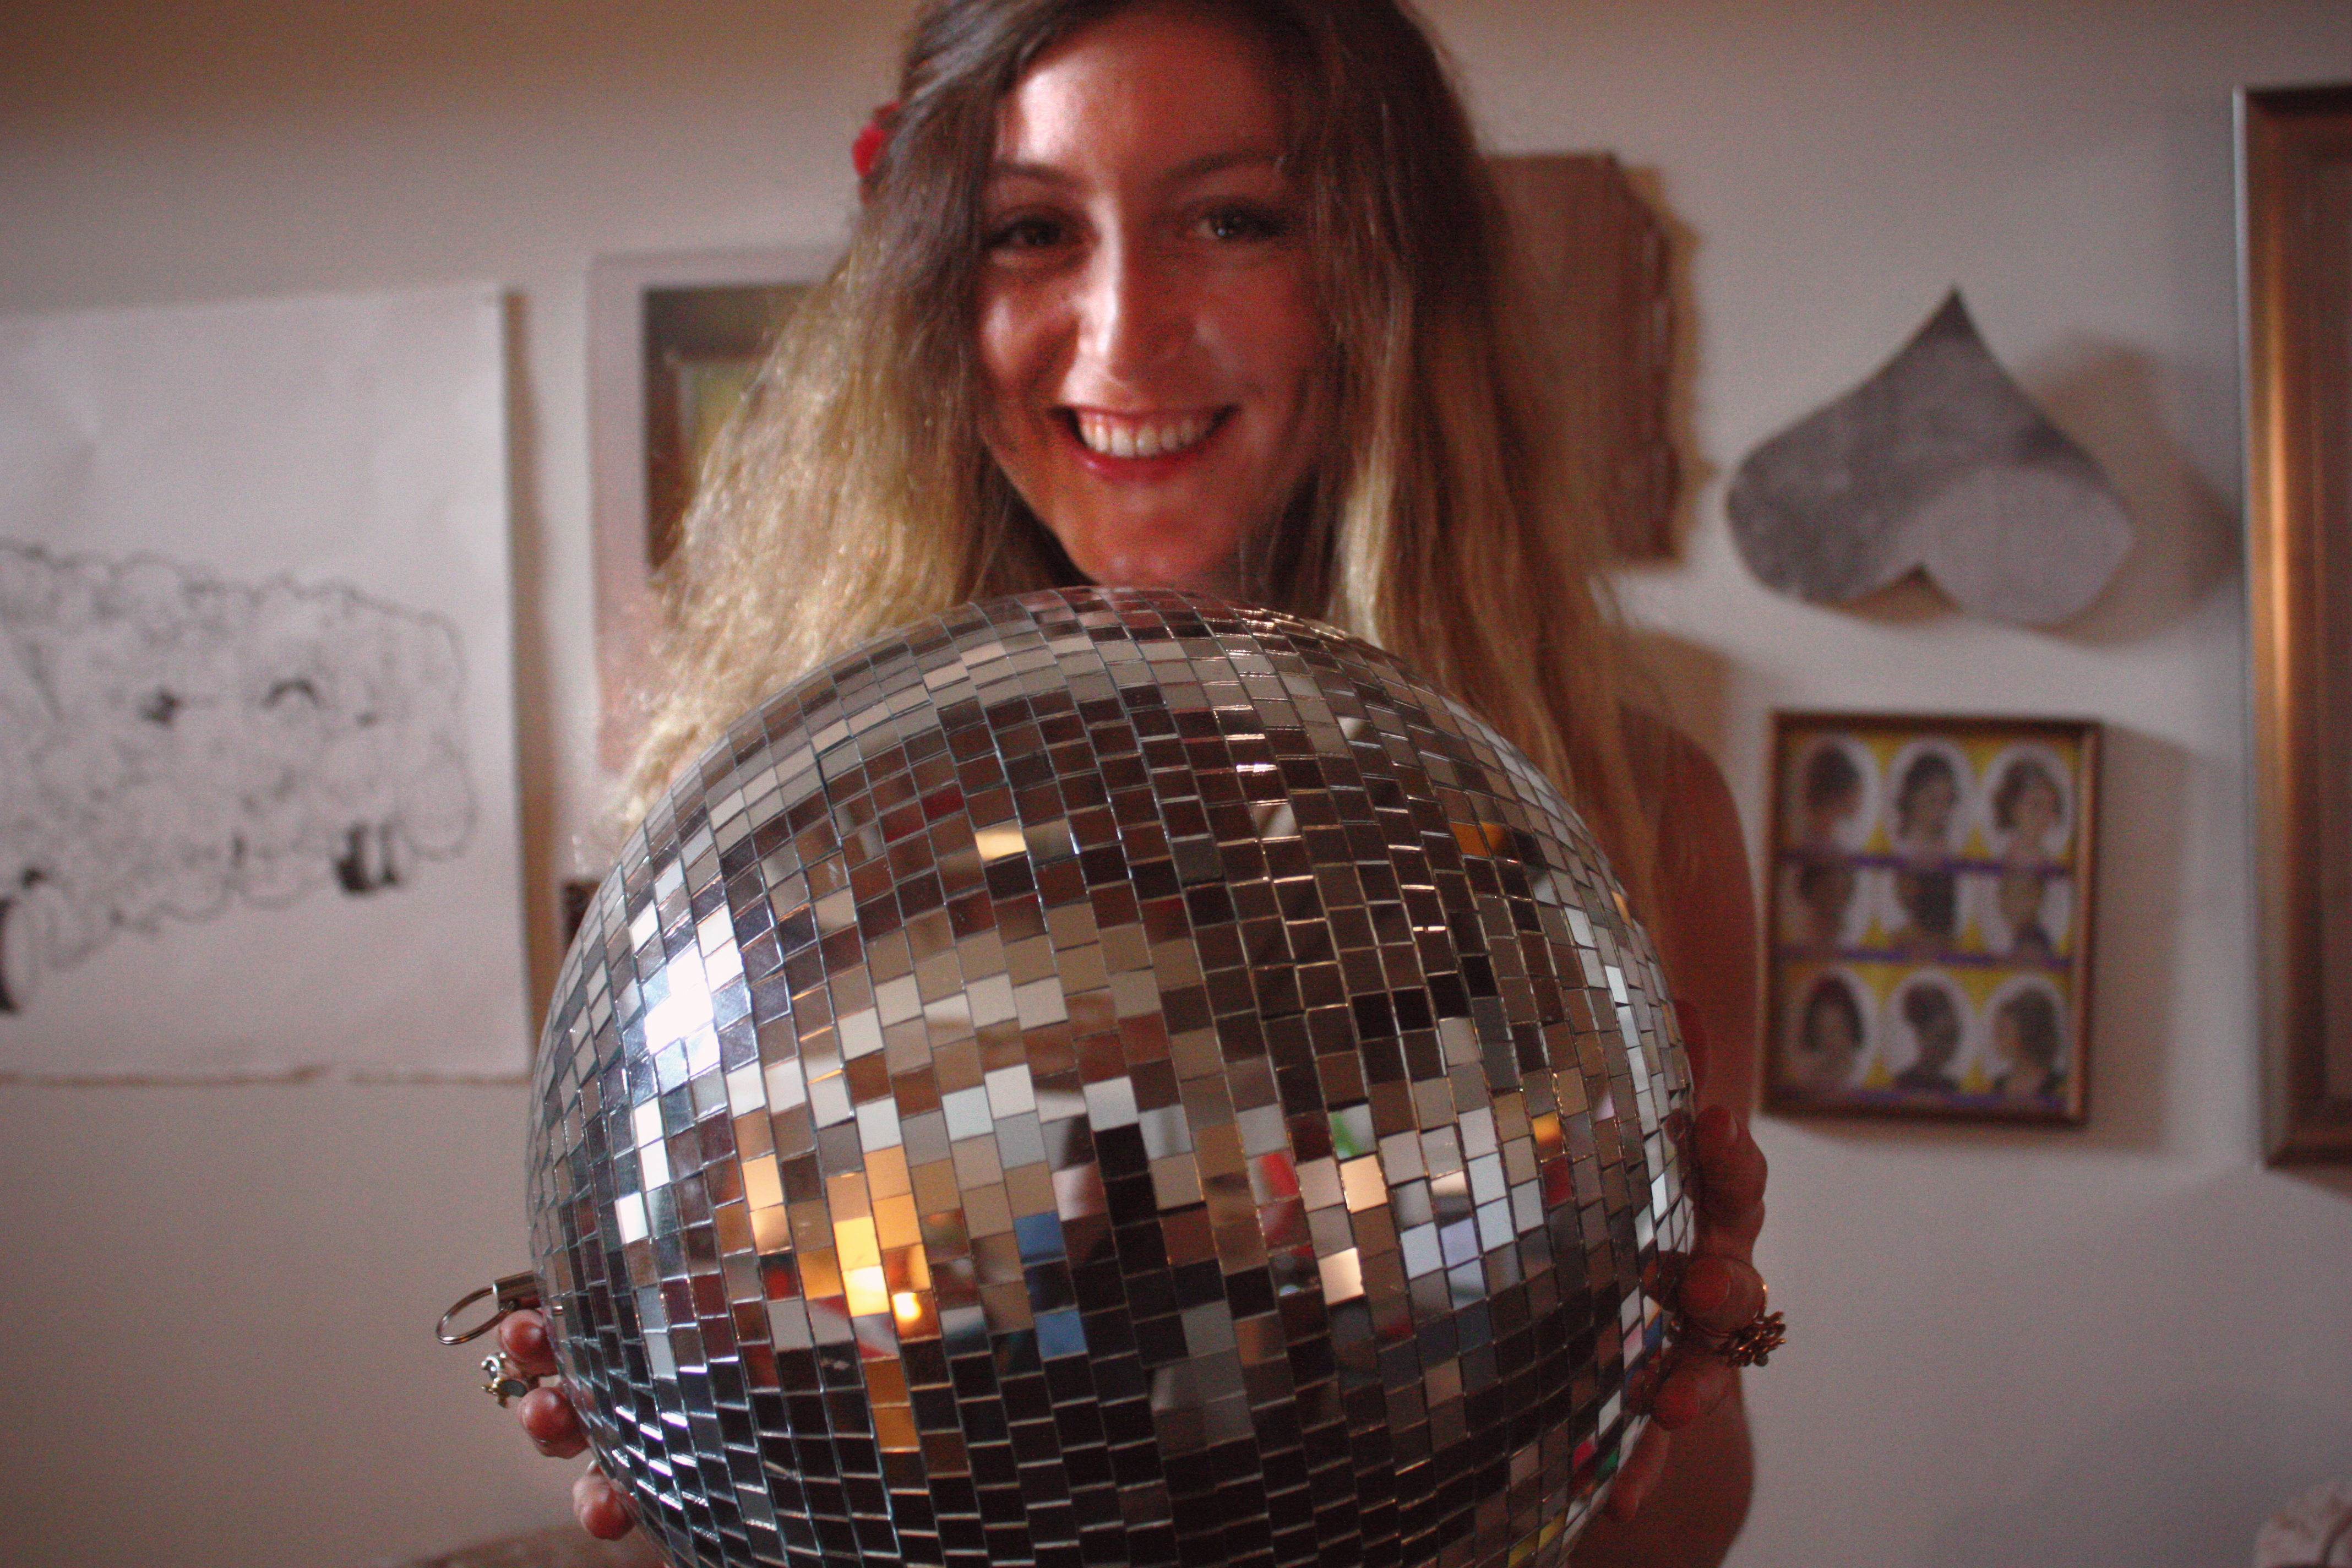 Allie Bashuk Local Wanderer Young Foxy and Free Glass and Sable Home Closet Tool disco ball brick loft